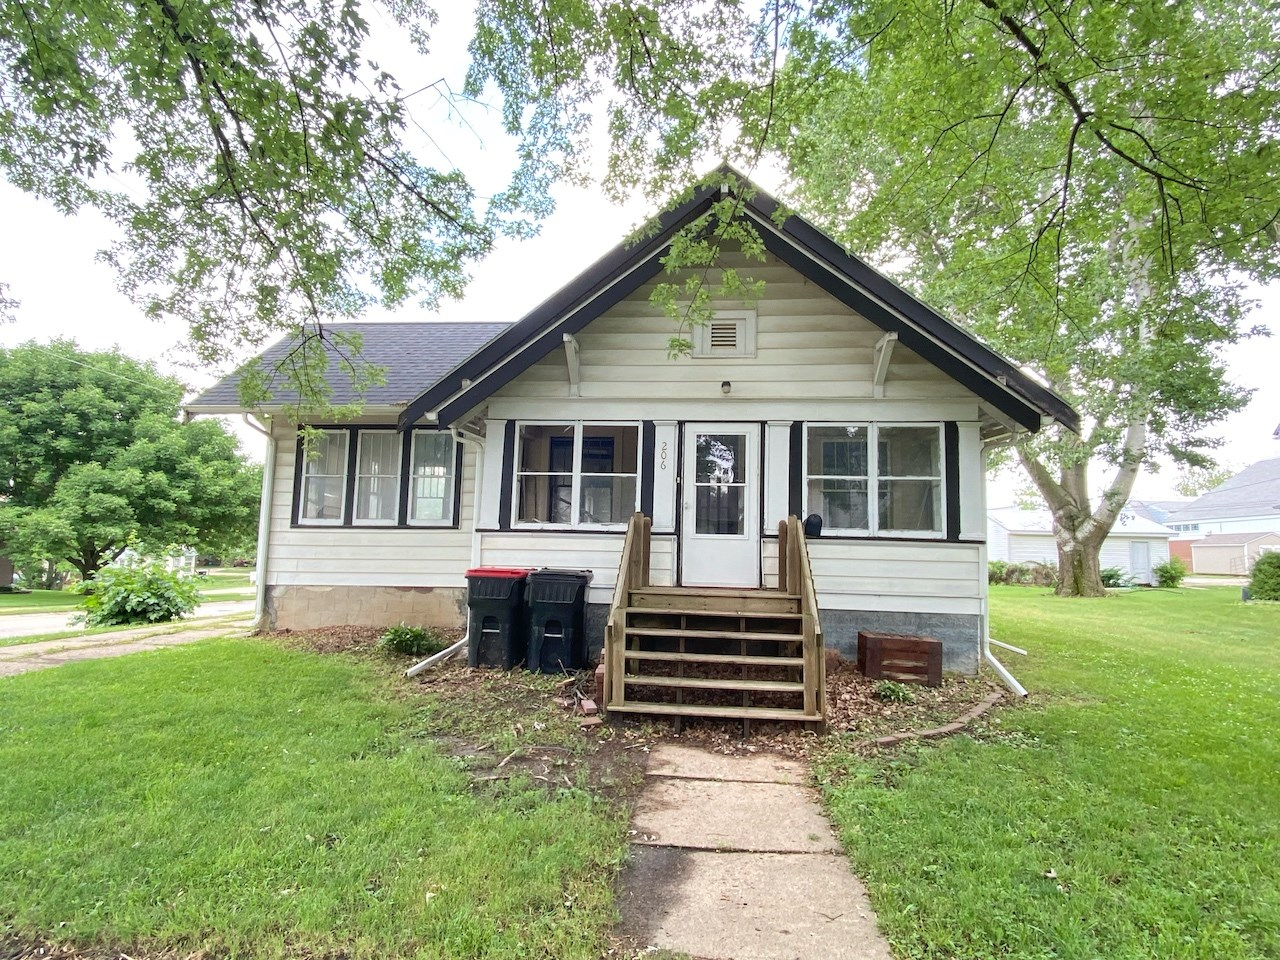 Bungalow Style Home For Sale in Mount Ayr Iowa